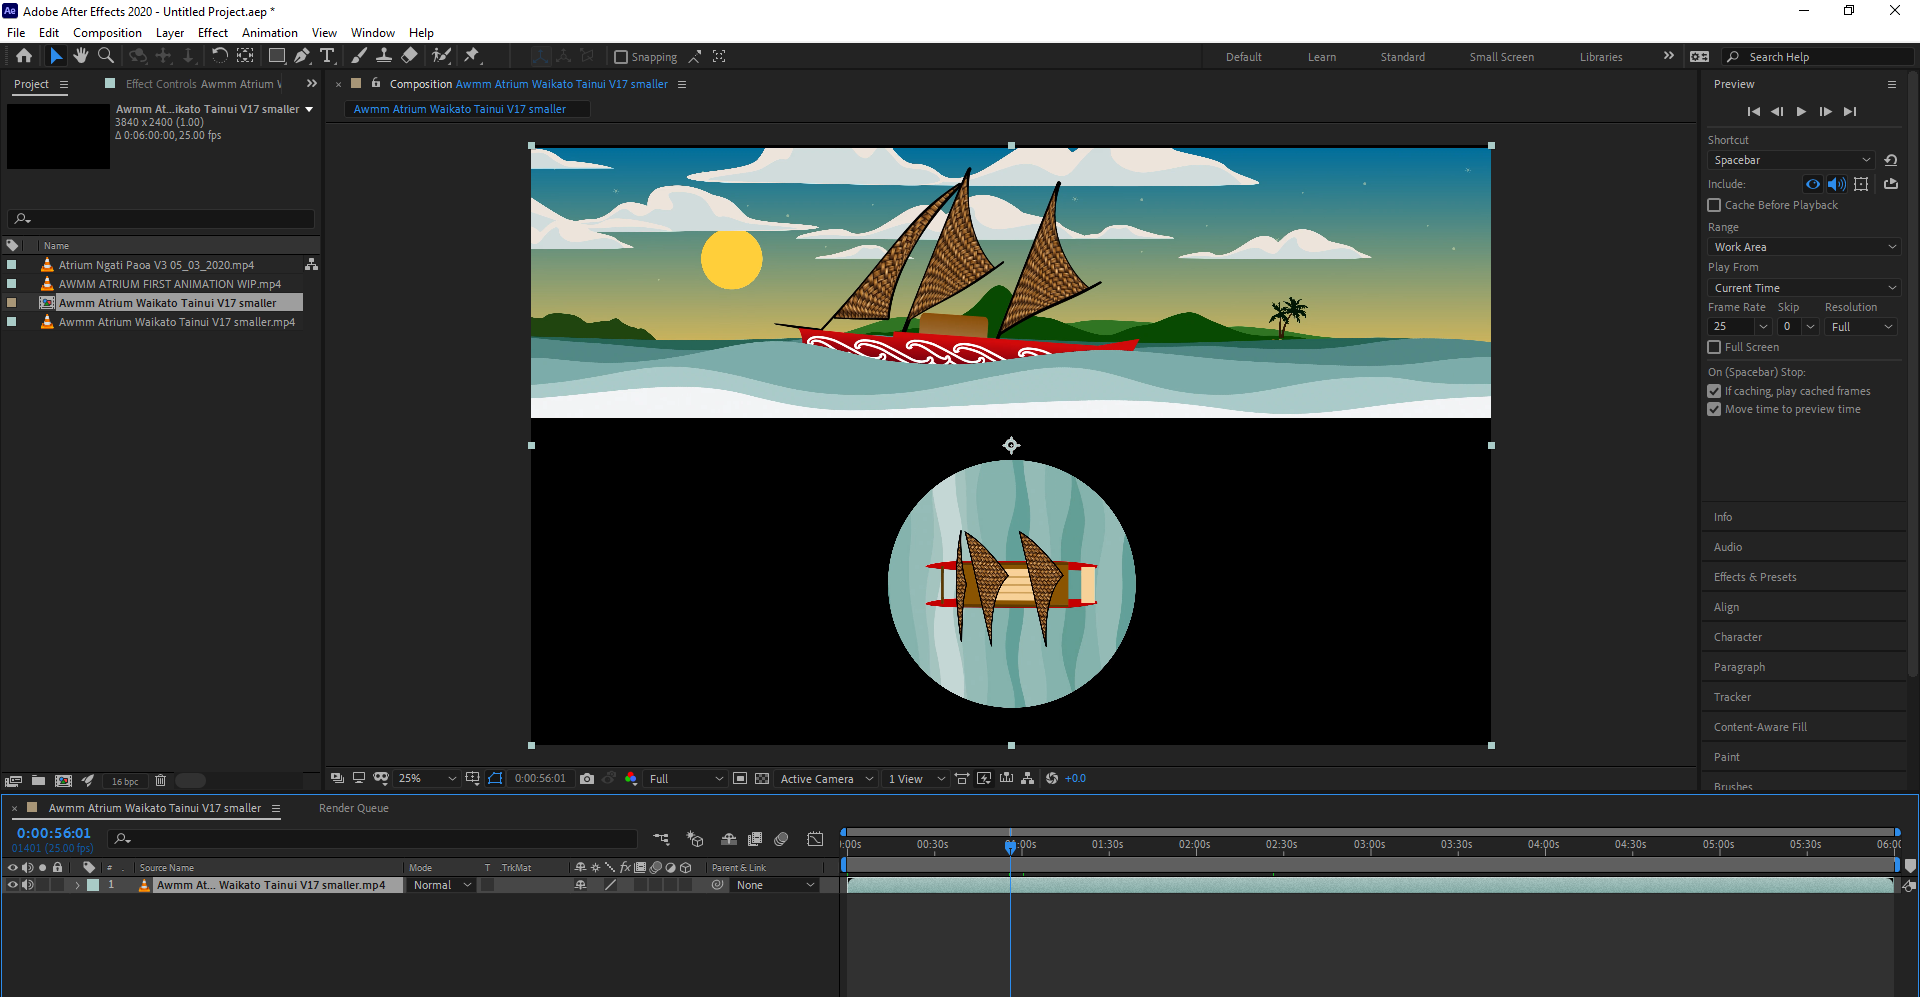 Adobe After Effects 2020 Y AWMM ATRIUM ARCHIVE kato Tainui MASTER 13 01 2021 Awmm Atrium Waikato Tainui timeline V32 aep 23 03 2021 1 03 13 PM